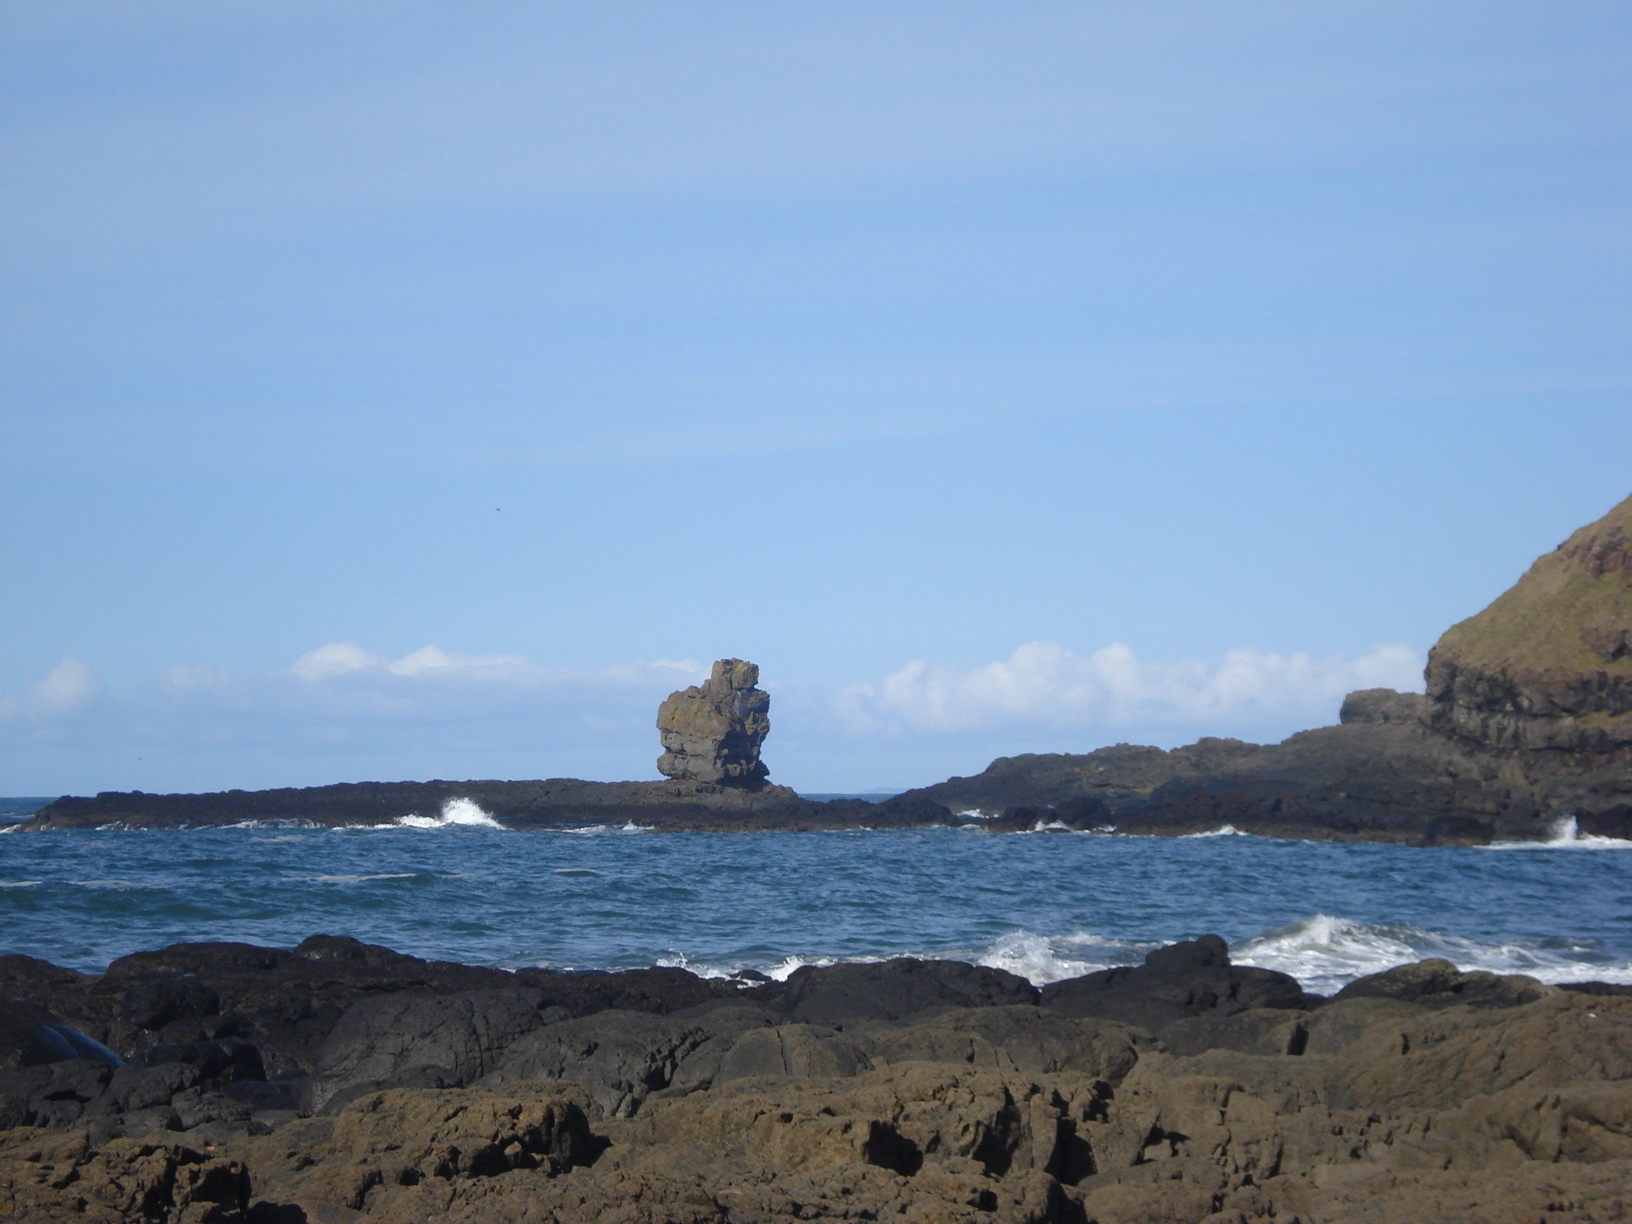 The Giant's Causeway. 'A basalt tooth jutting out above the waves'